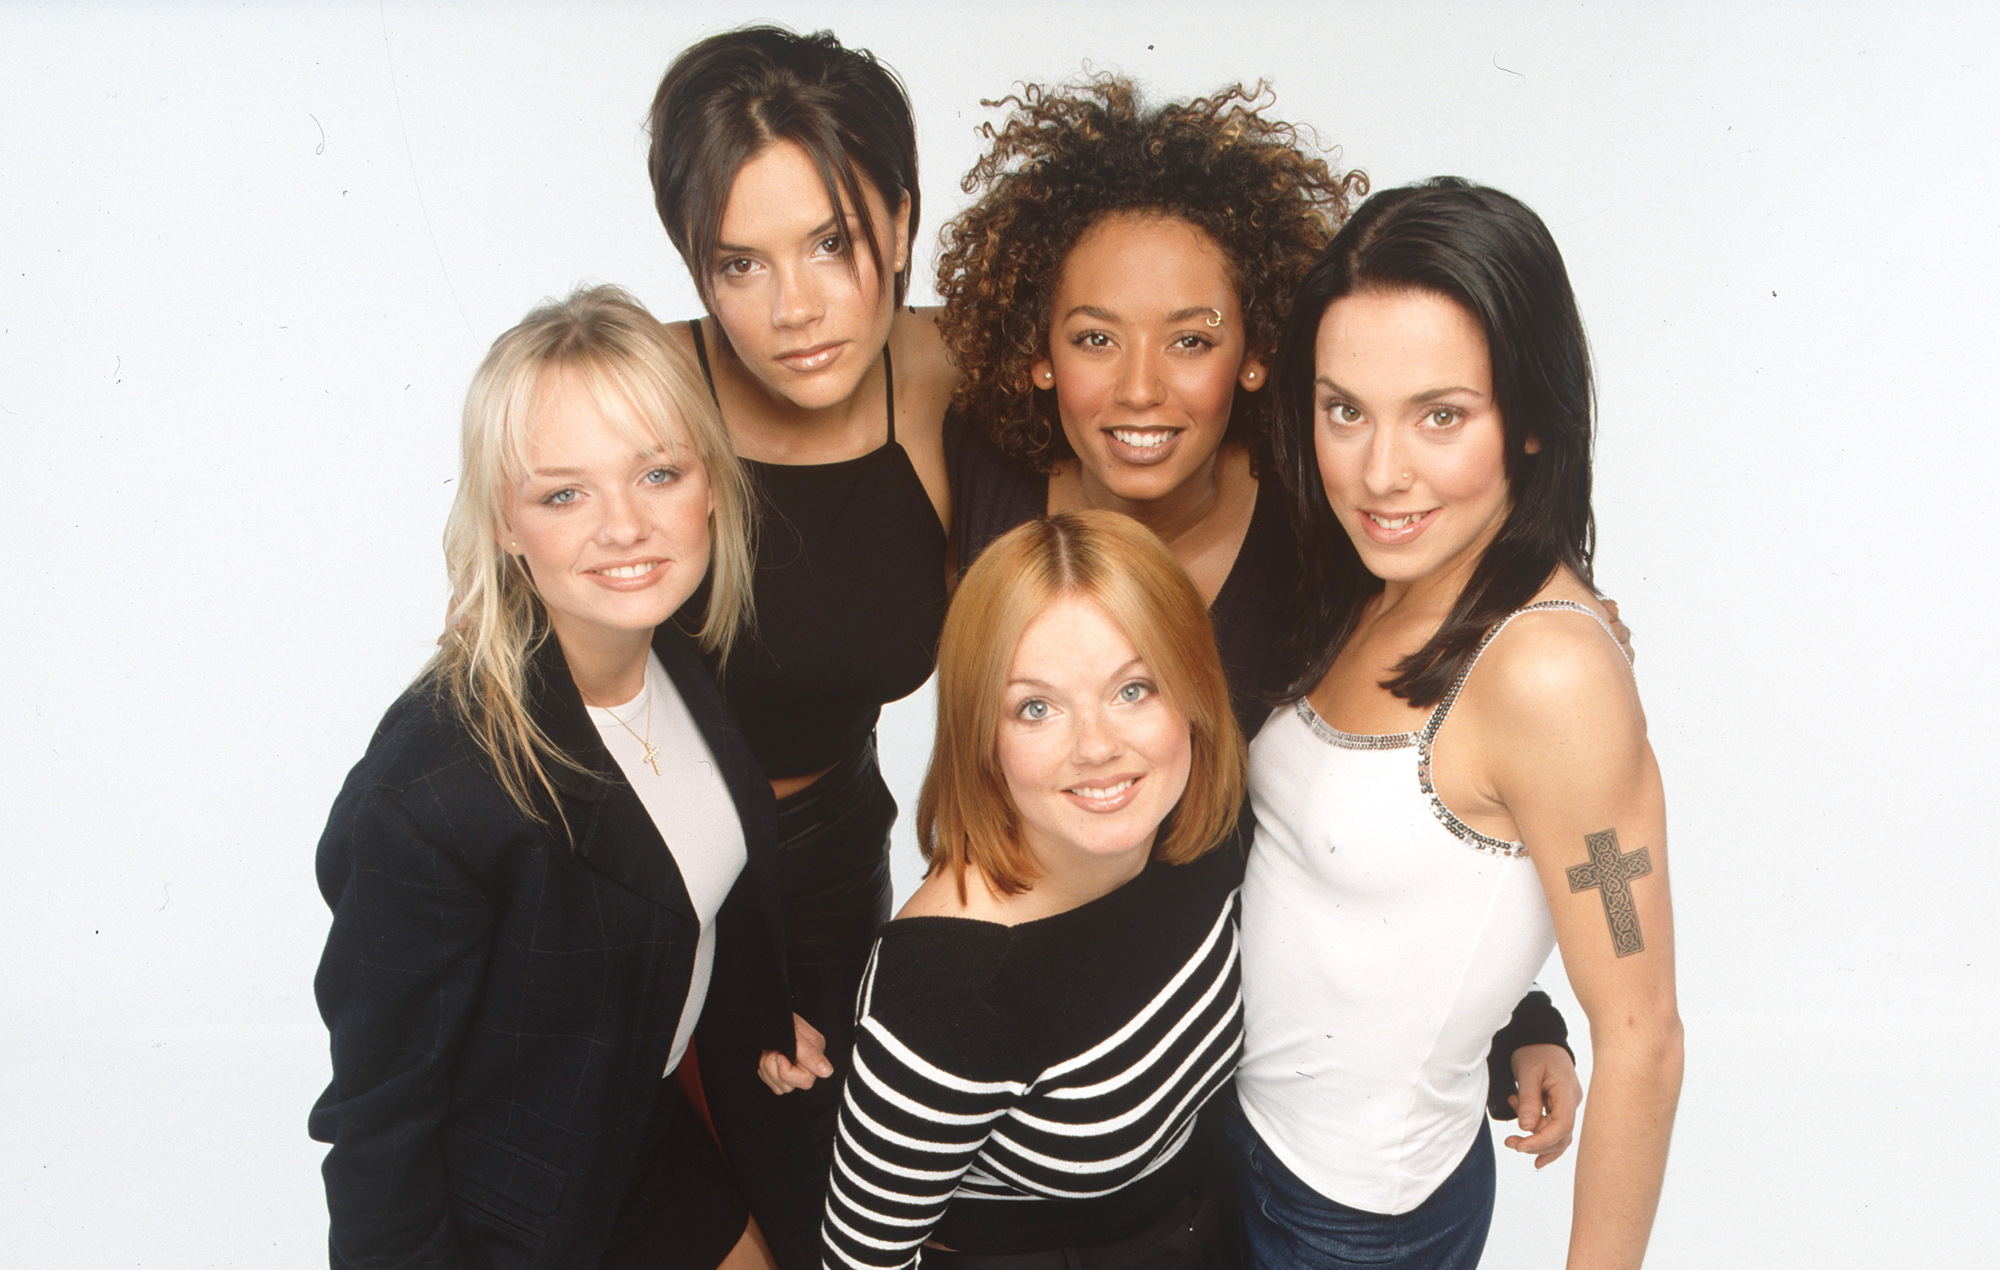 Listen to the previously-unreleased Spice Girls song, 'Feed Your Love'